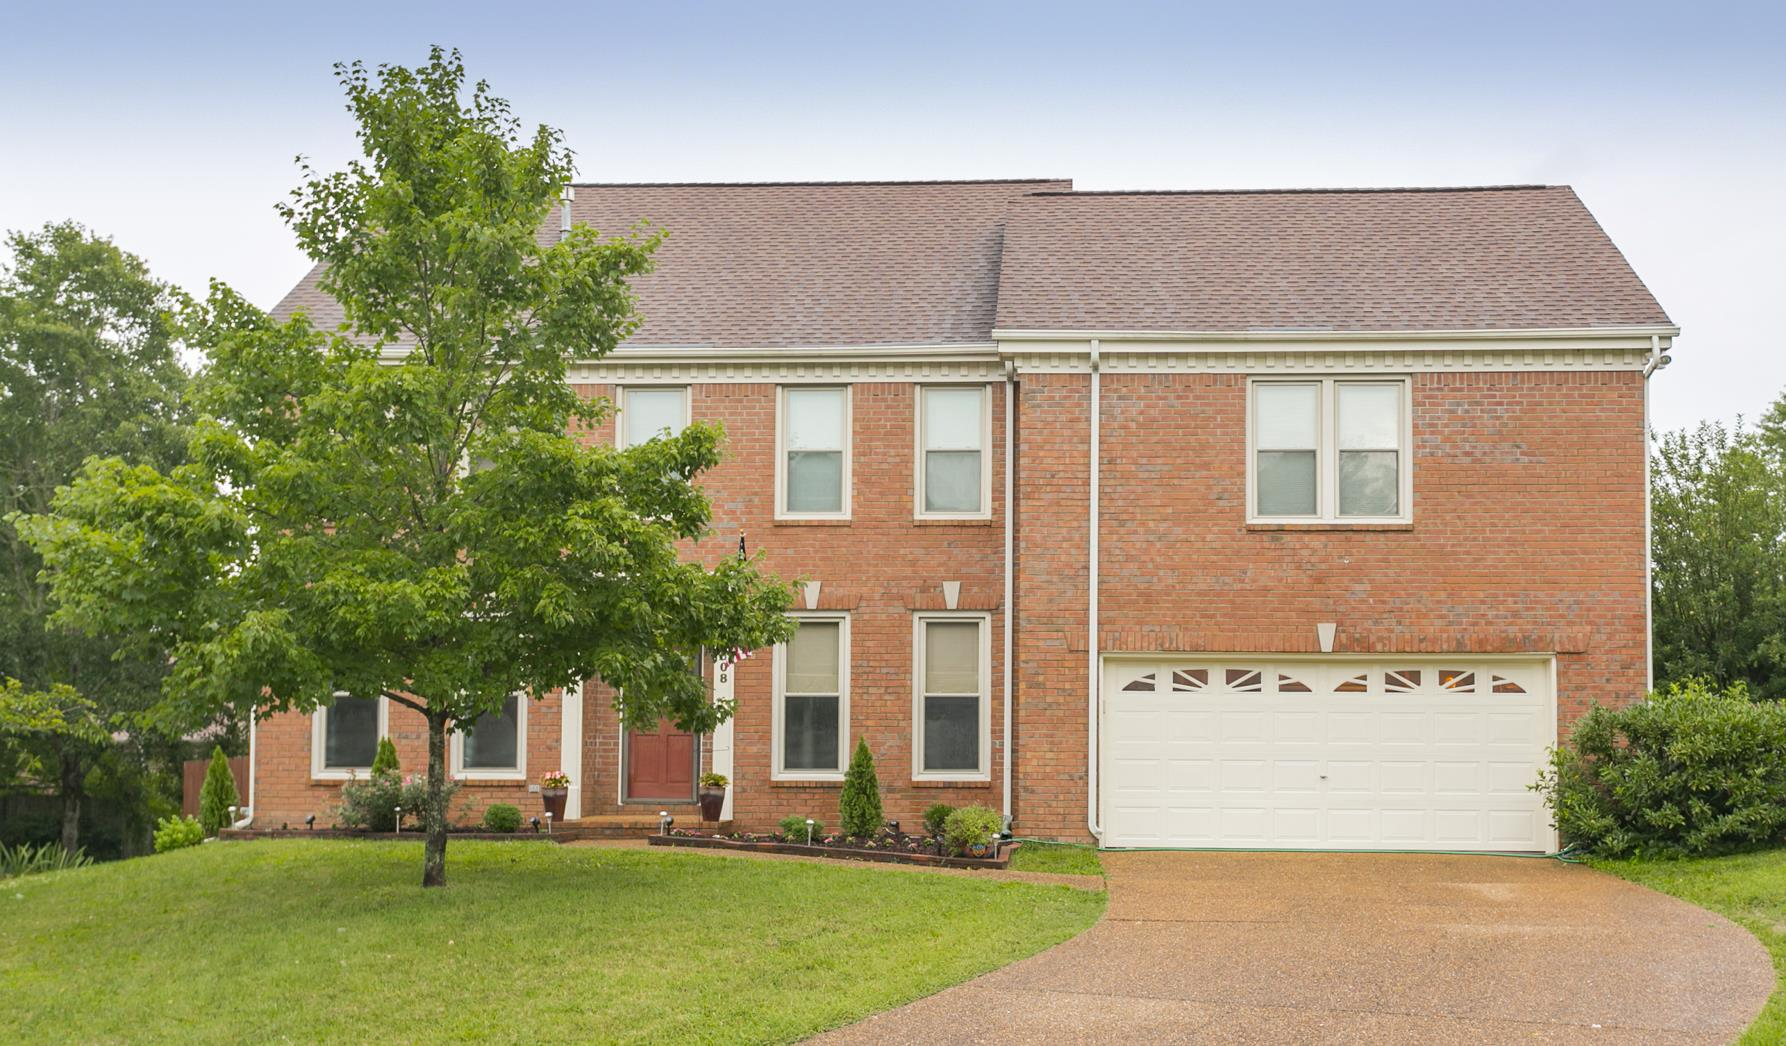 608 S Riverbend Ct, Bellevue, Tennessee